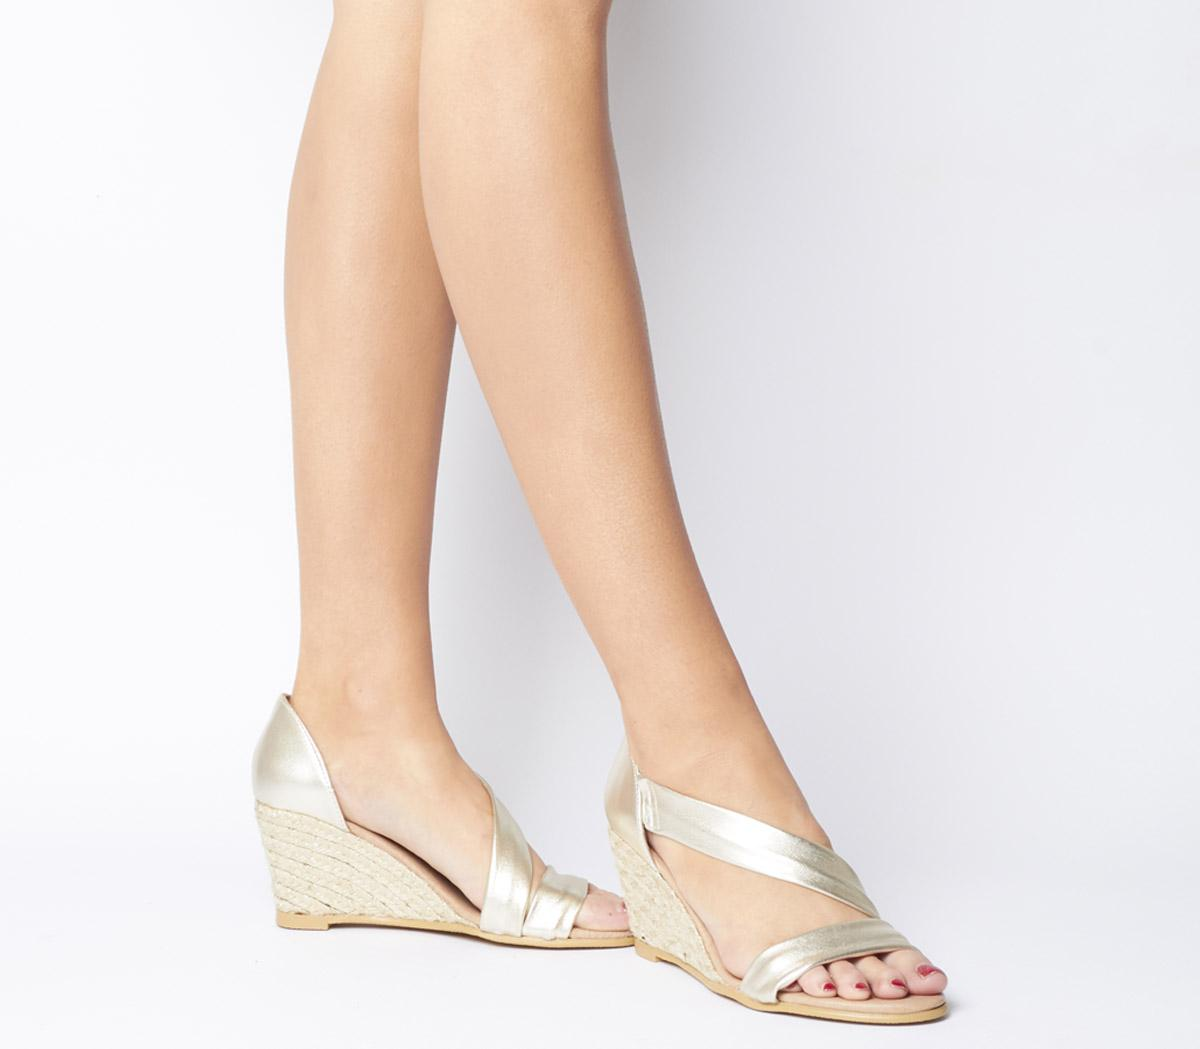 Maid Asymmetric Wedges